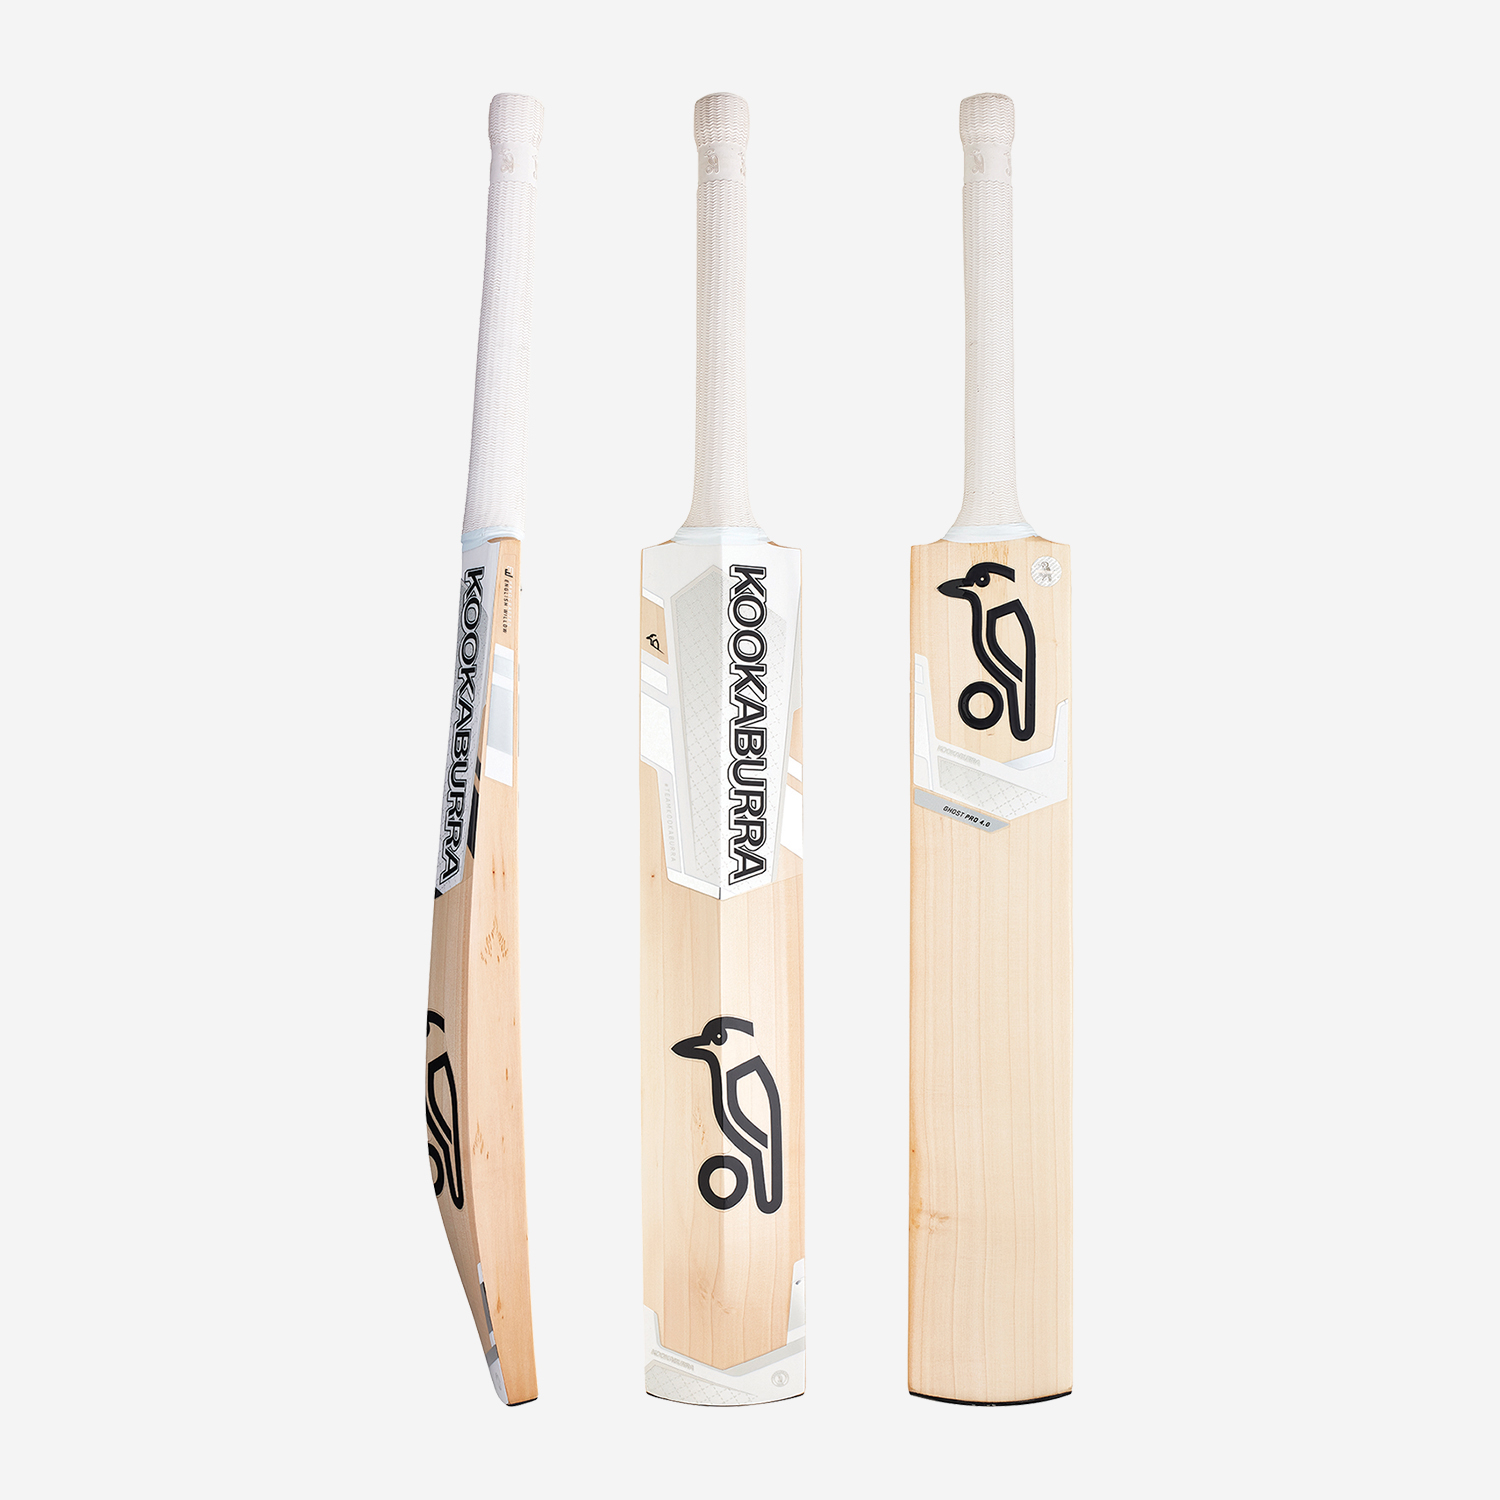 Ghost Pro 4.0 Cricket Bat